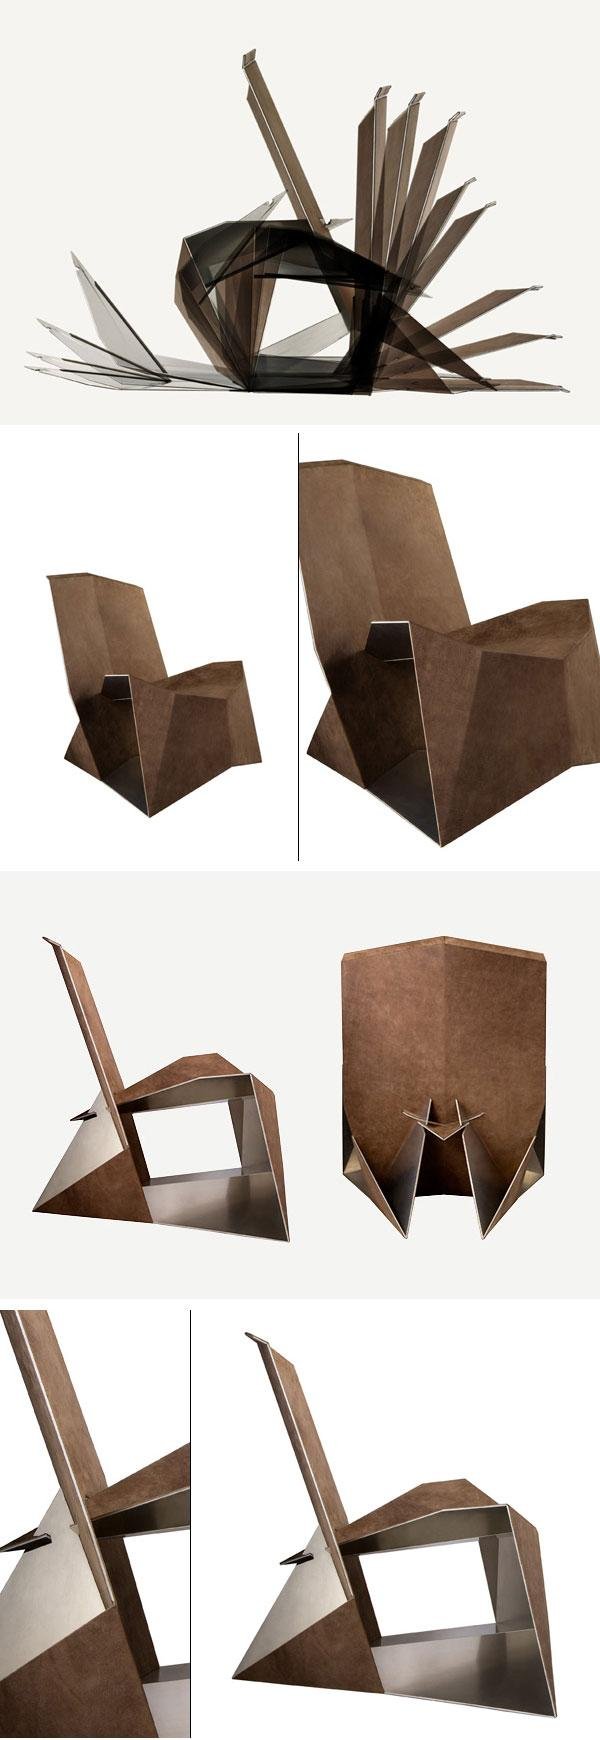 Sélection inspiration #6 chair design | MRG LAB BLOG creative experience